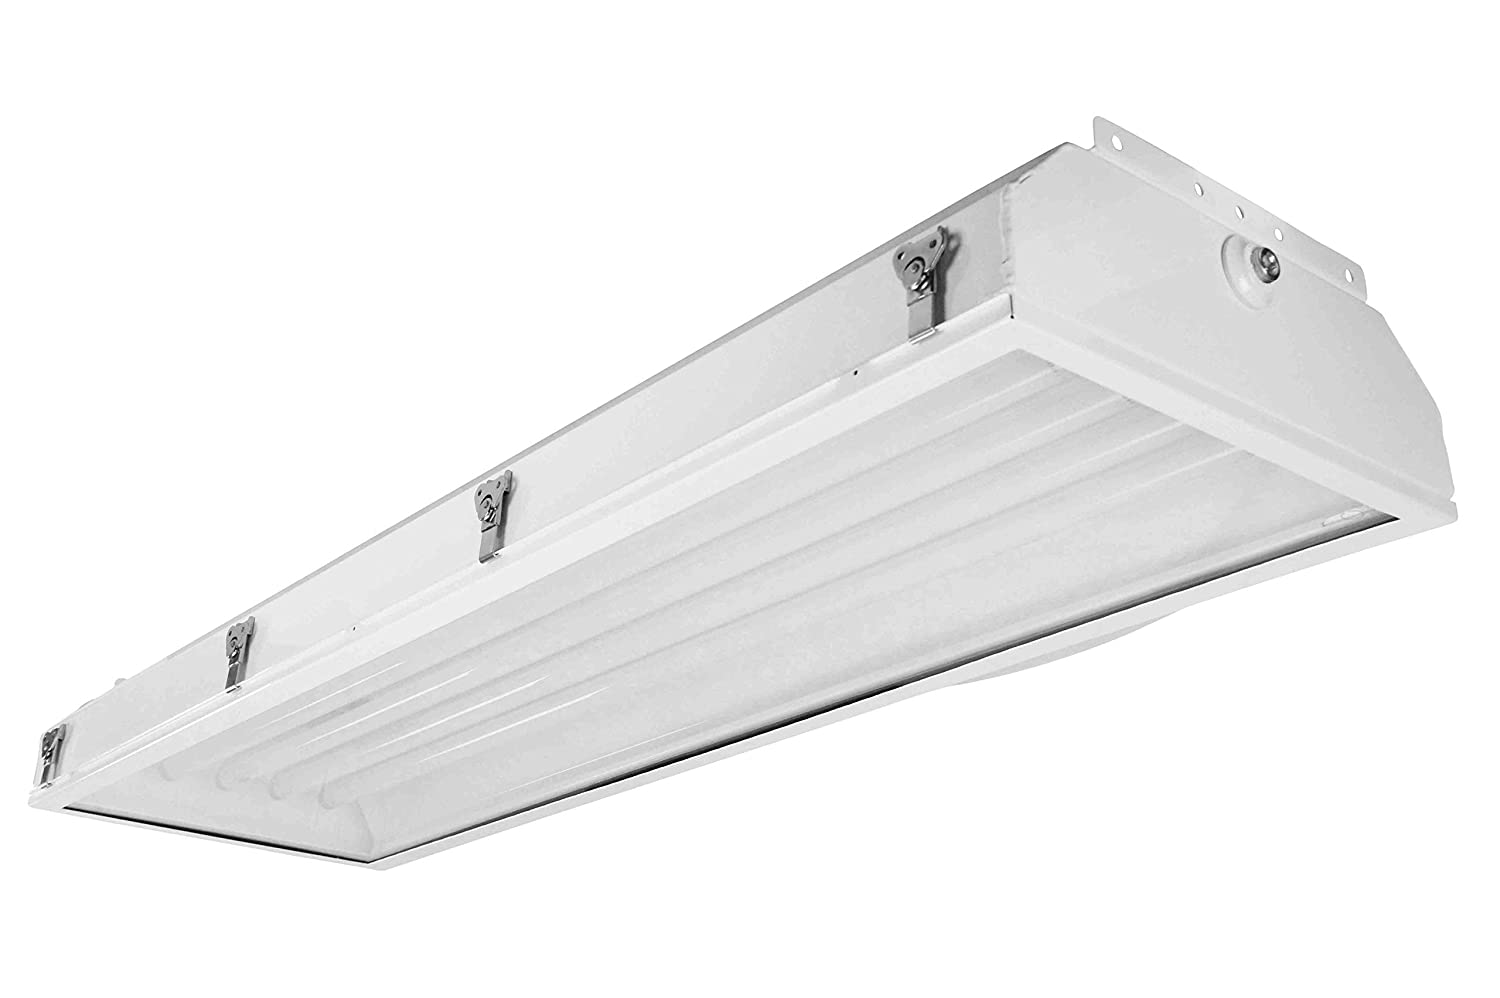 Hazardous area fluorescent light class 1 div 2 groups a b c and d and class 2 div 2 f g 4 4l t12ho pendant commercial bay lighting amazon com